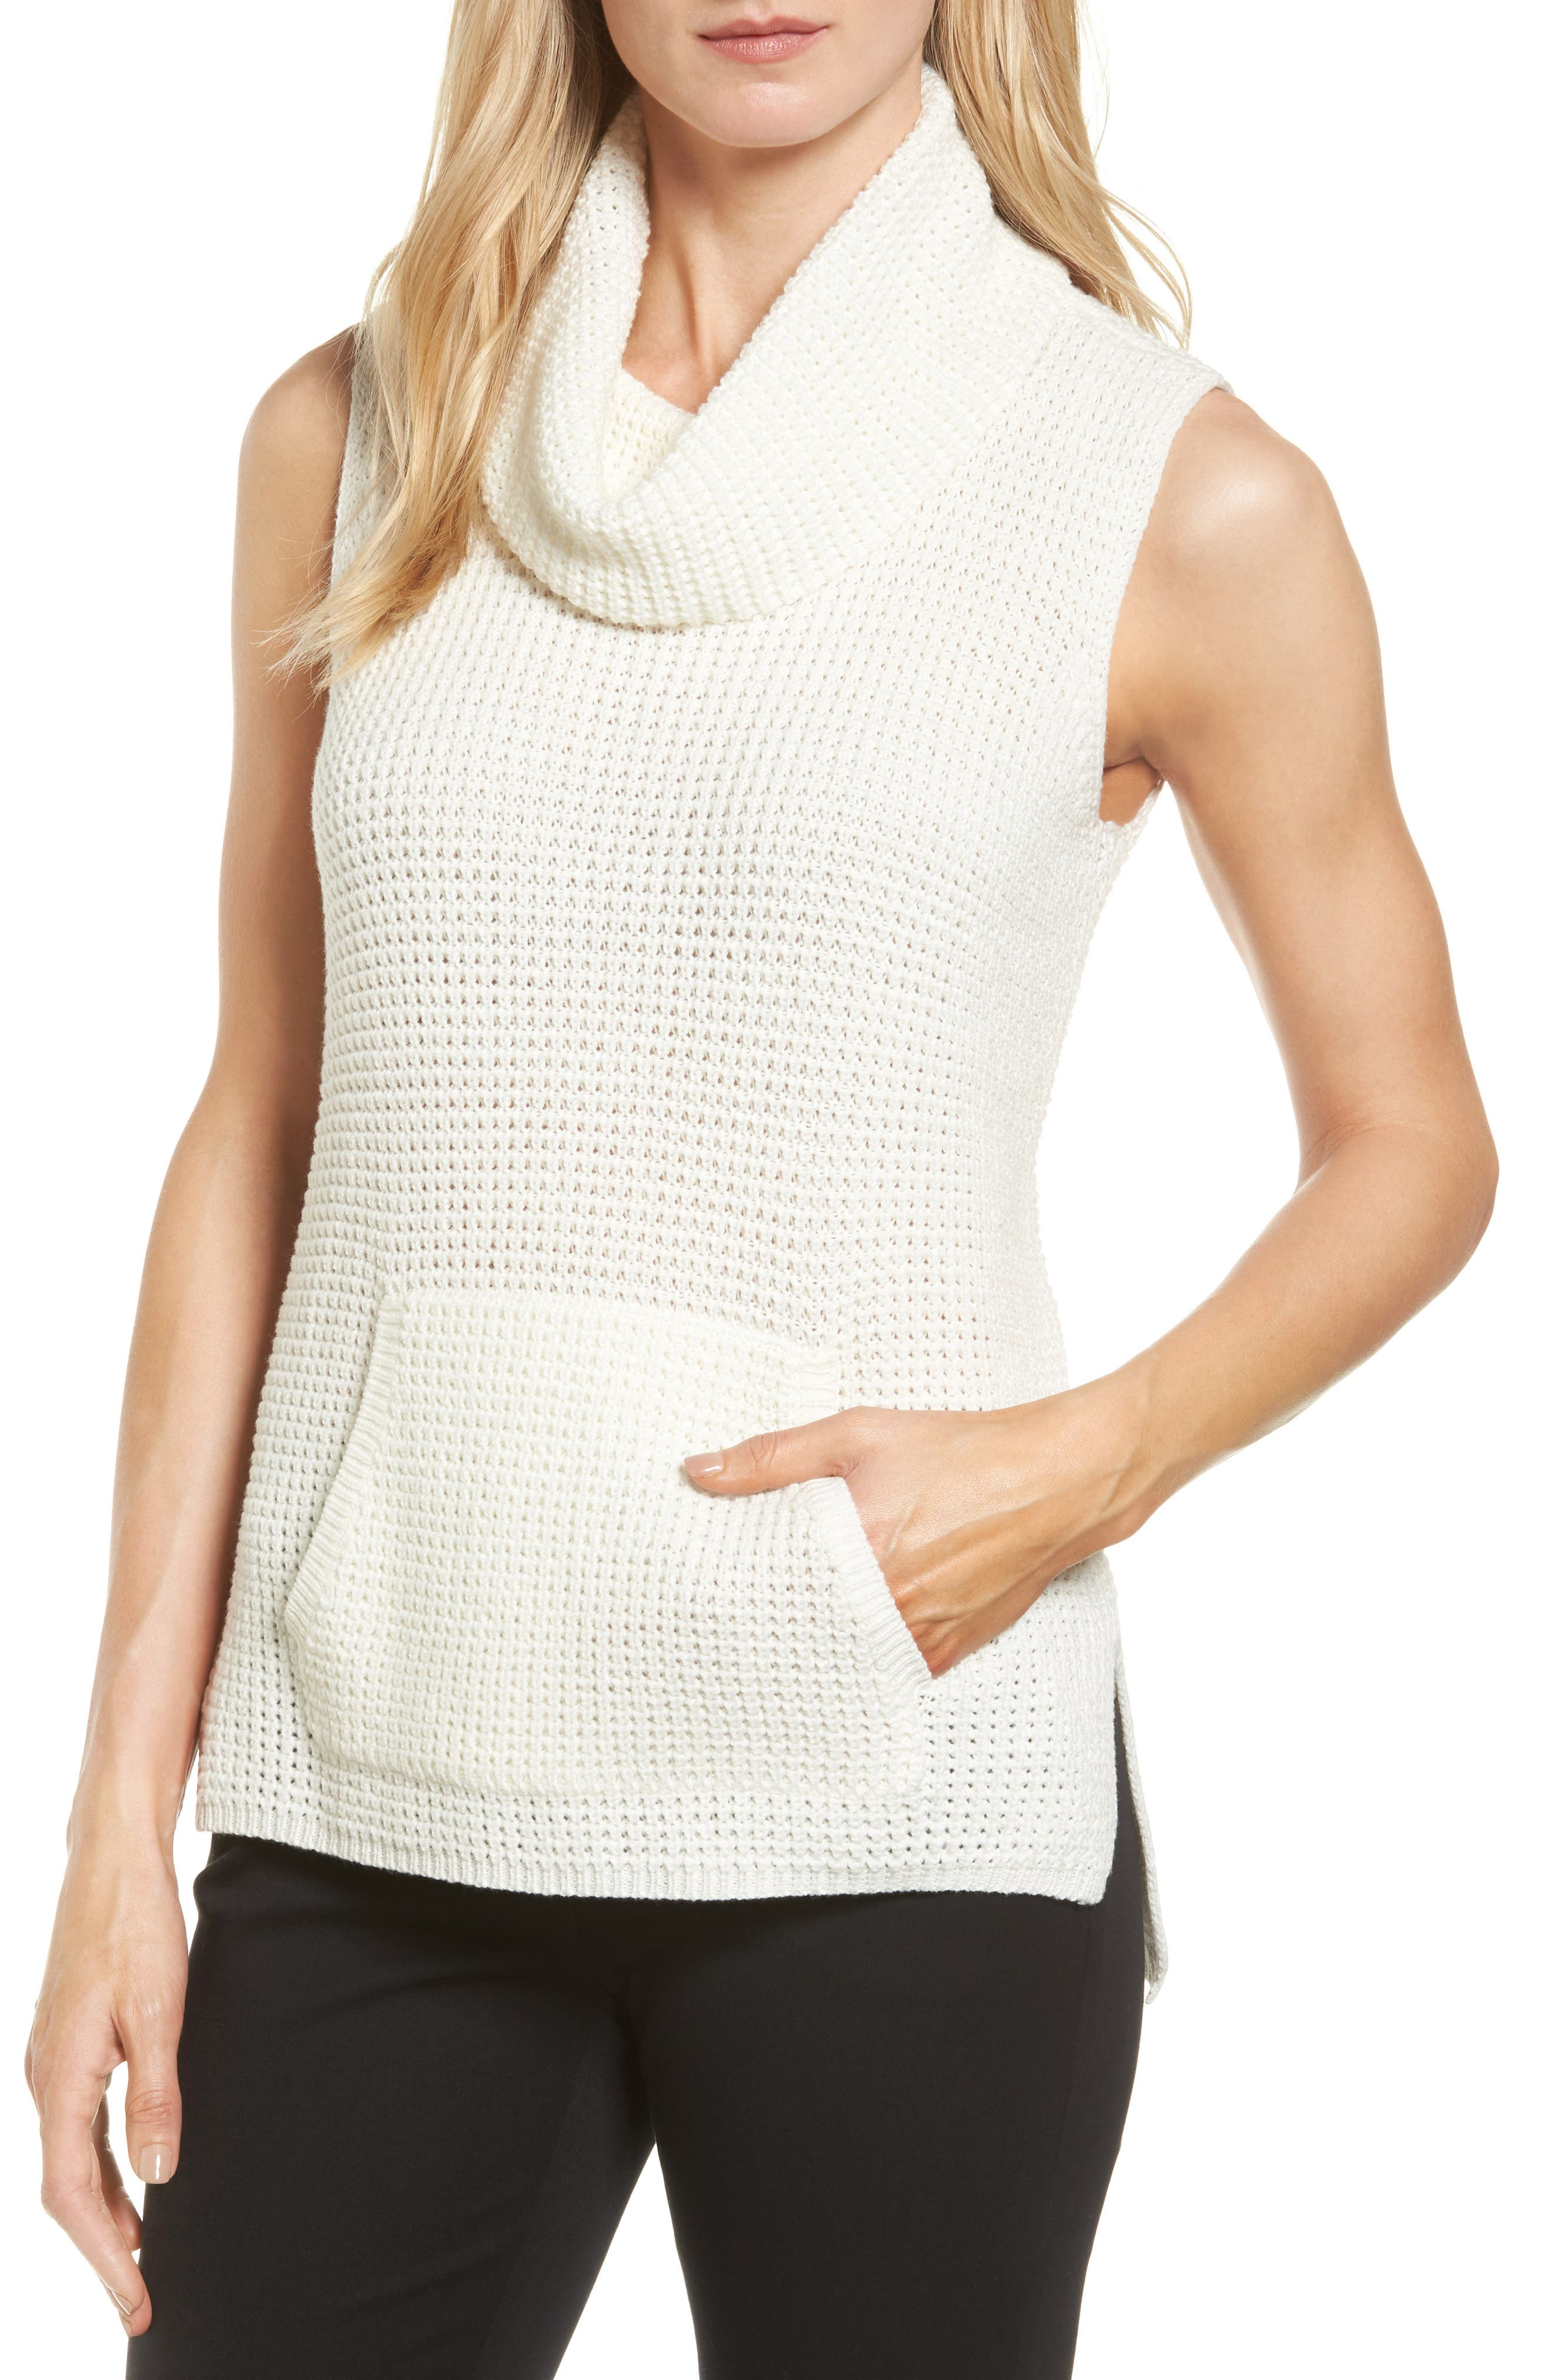 Main Image - Two by Vince Camuto Waffle Stitch Vest (Regular & Petite)